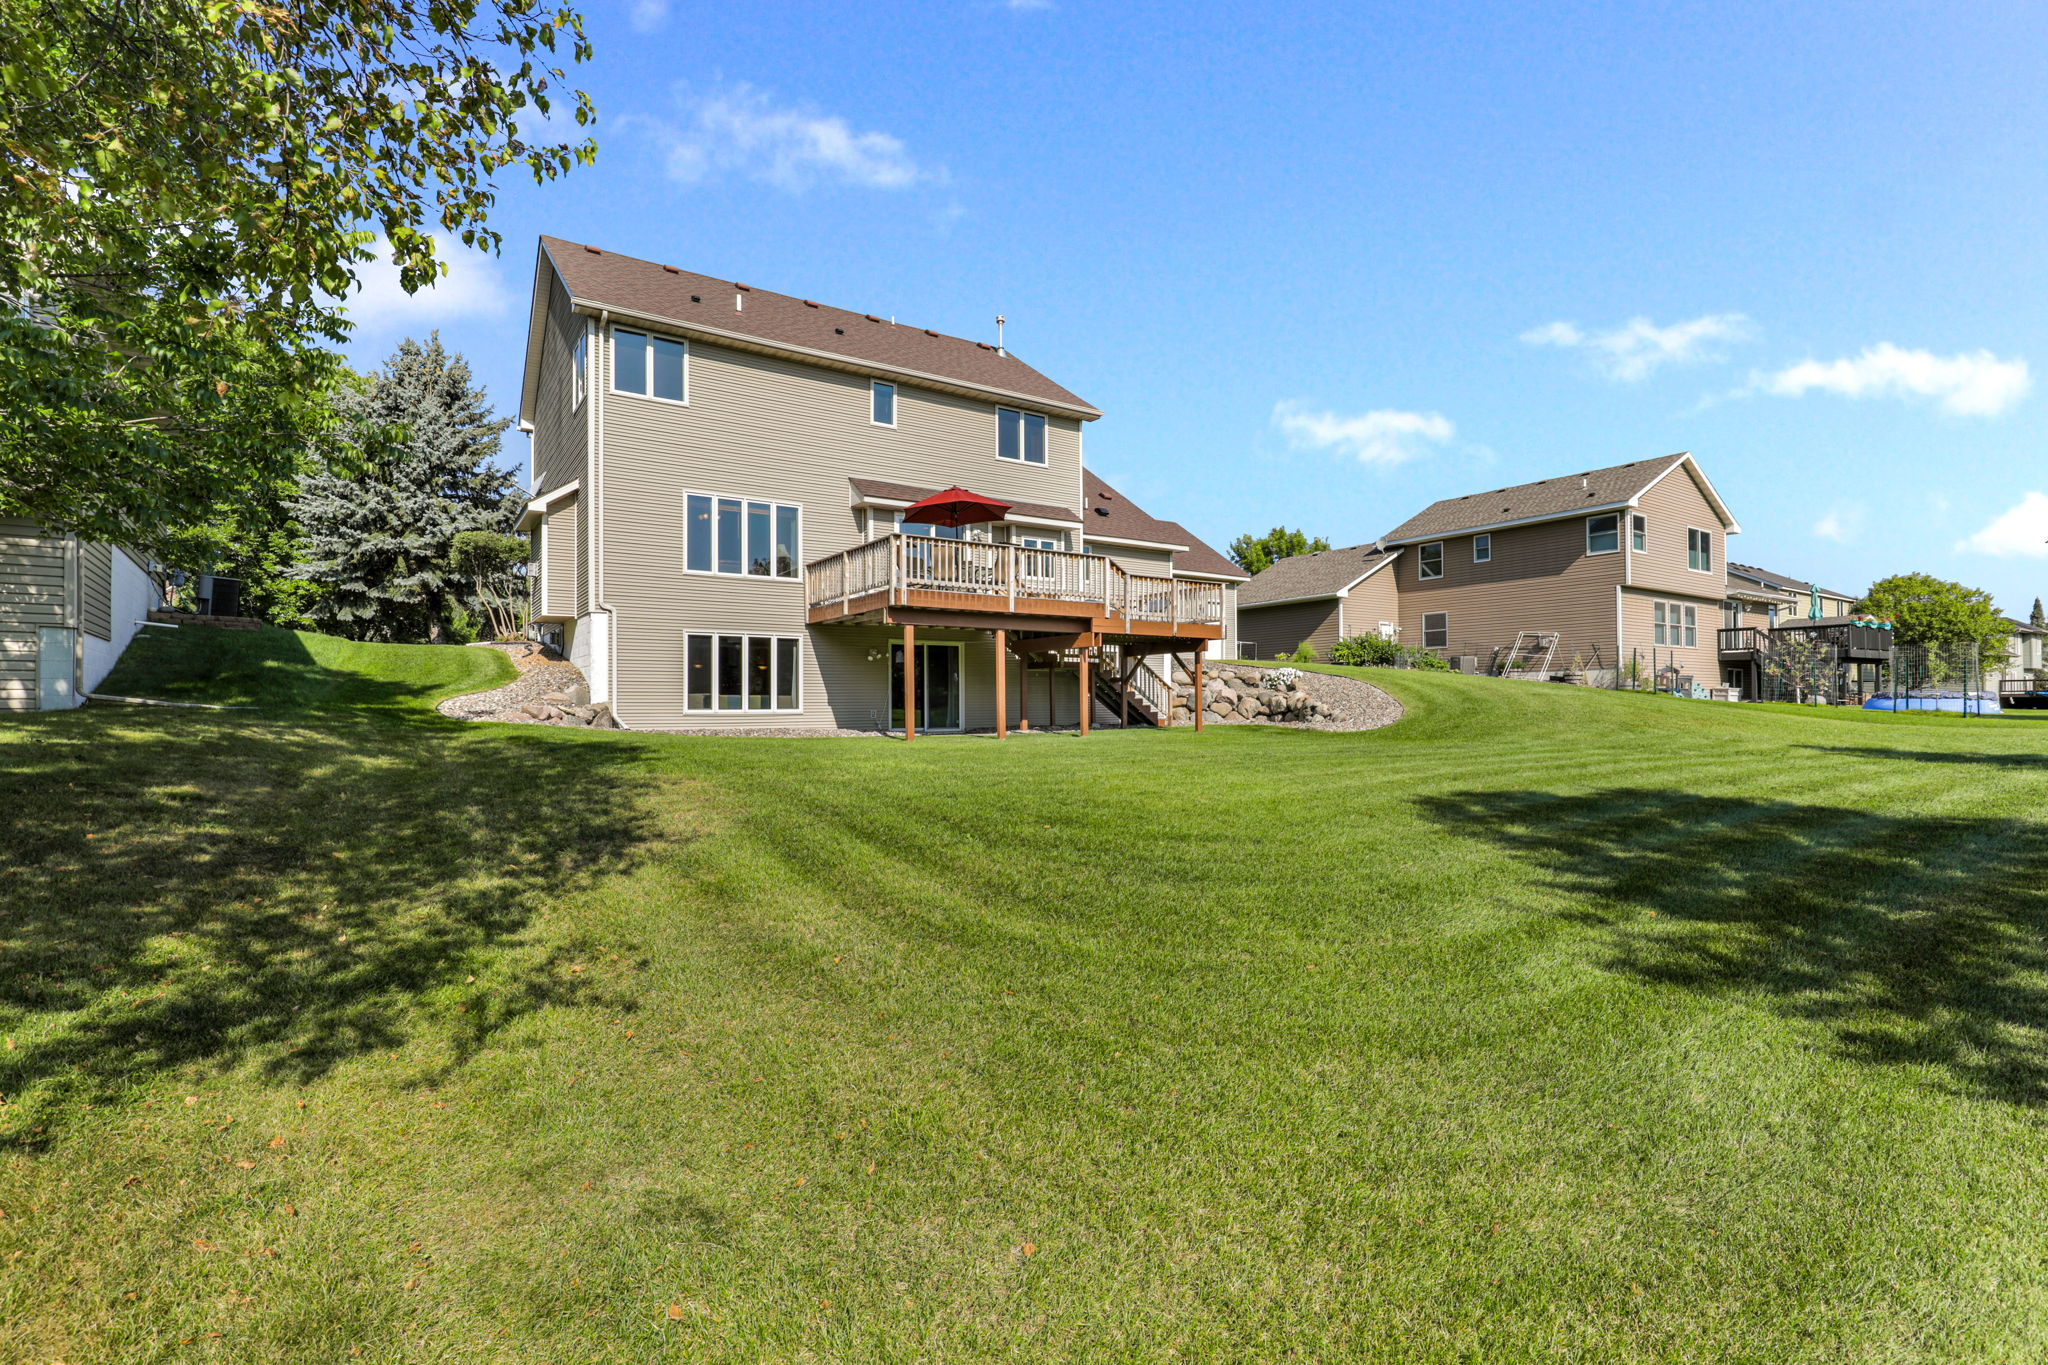 6652 Clearwater Creek Dr, Lino Lakes, MN 55038, USA Photo 51